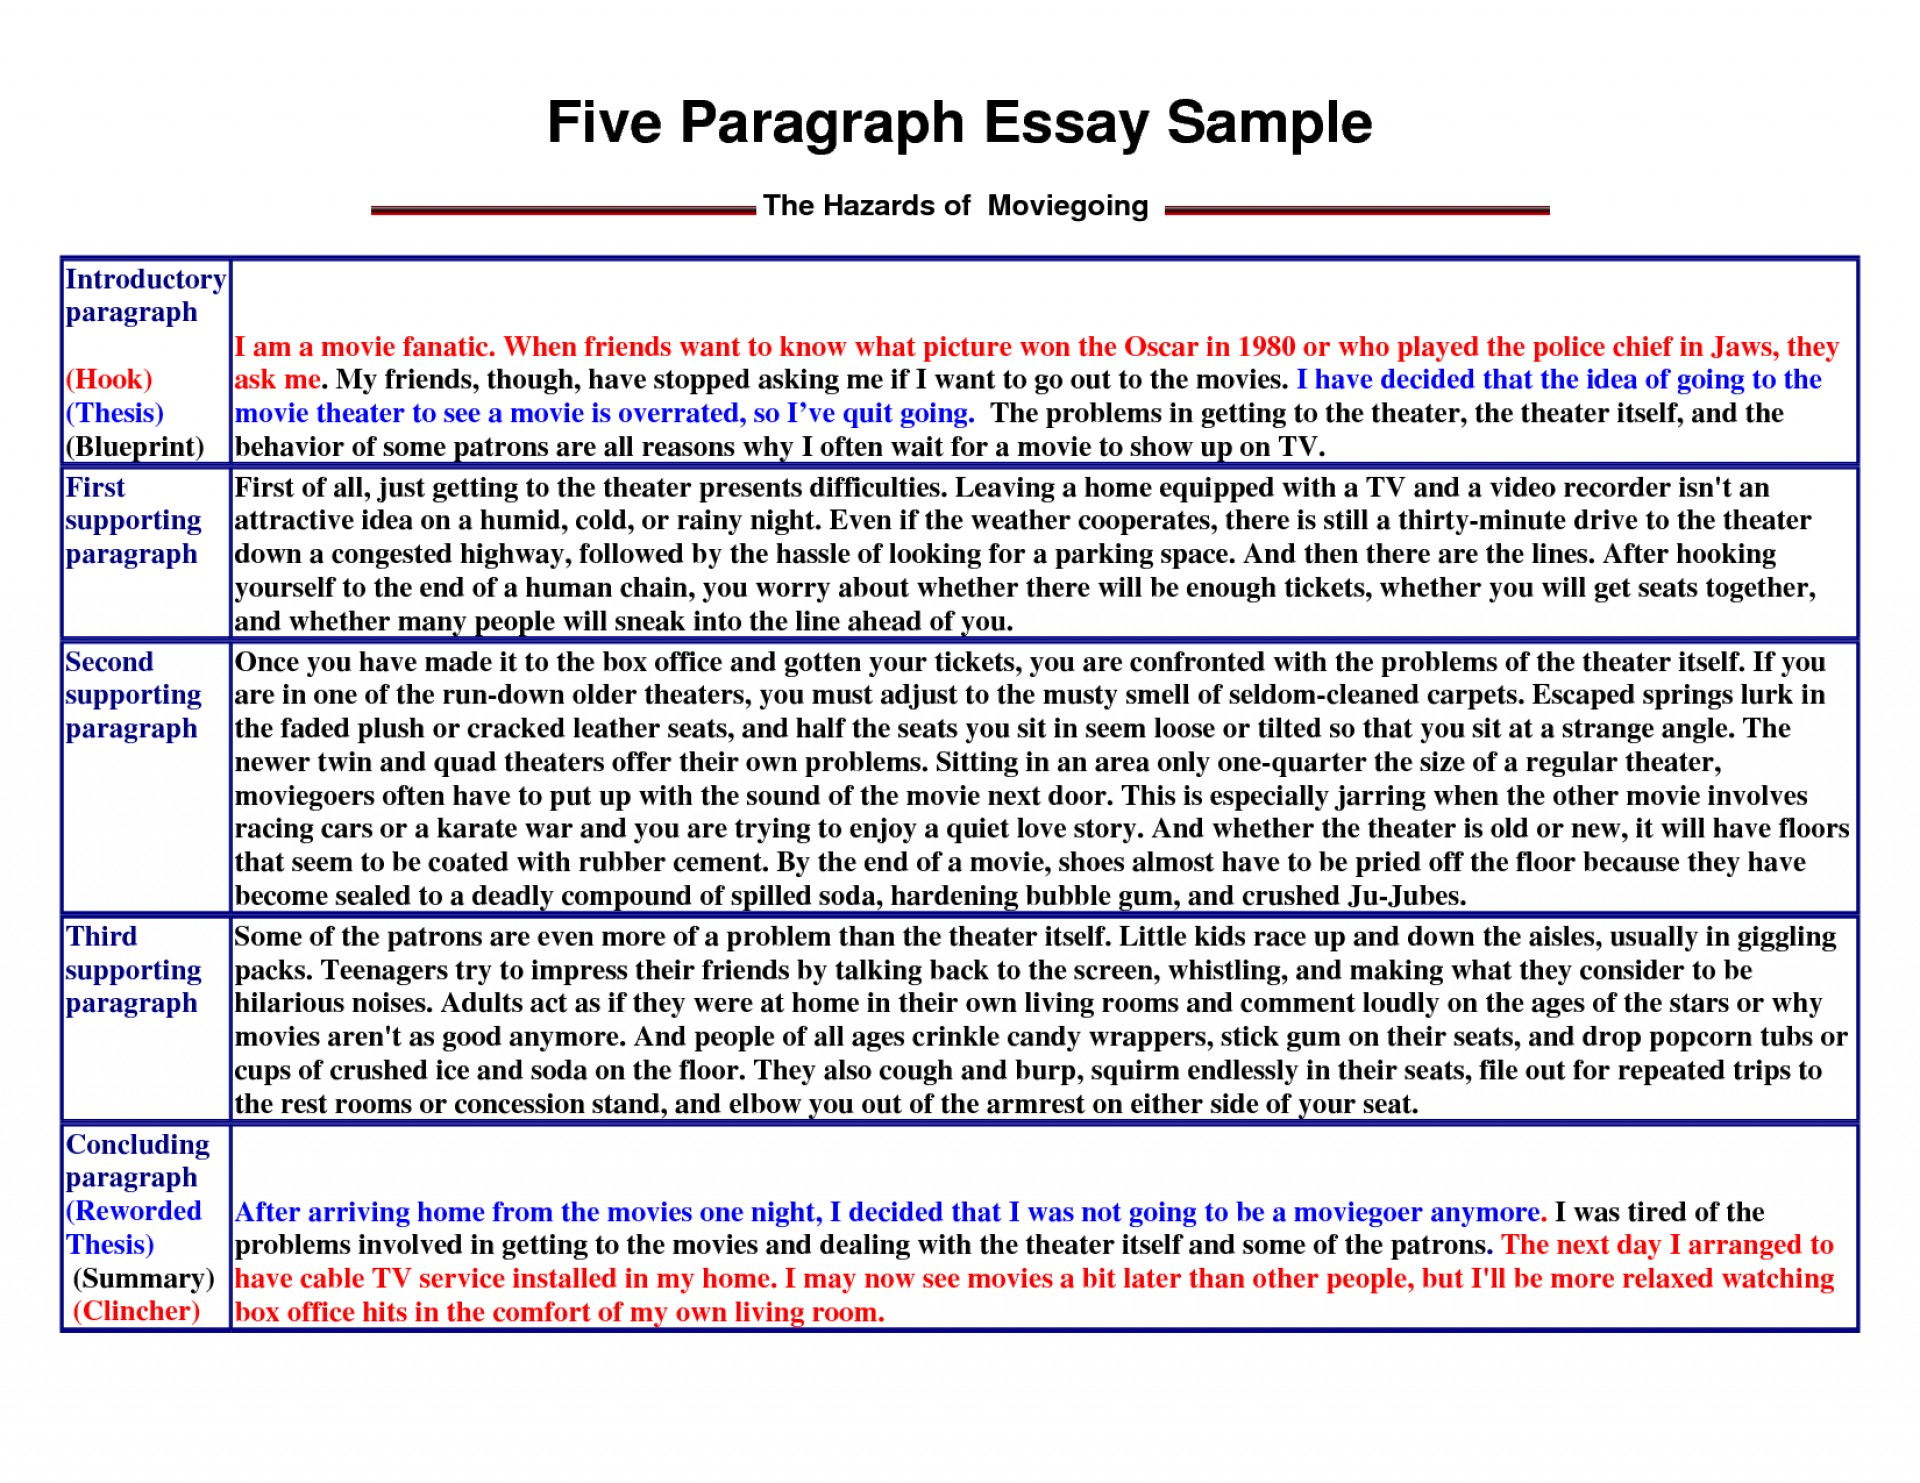 008 Paragraph Essay Sample Example Stirring 5 Free Outline Template Argumentative Pdf Five The Hazards Of Moviegoing 1920